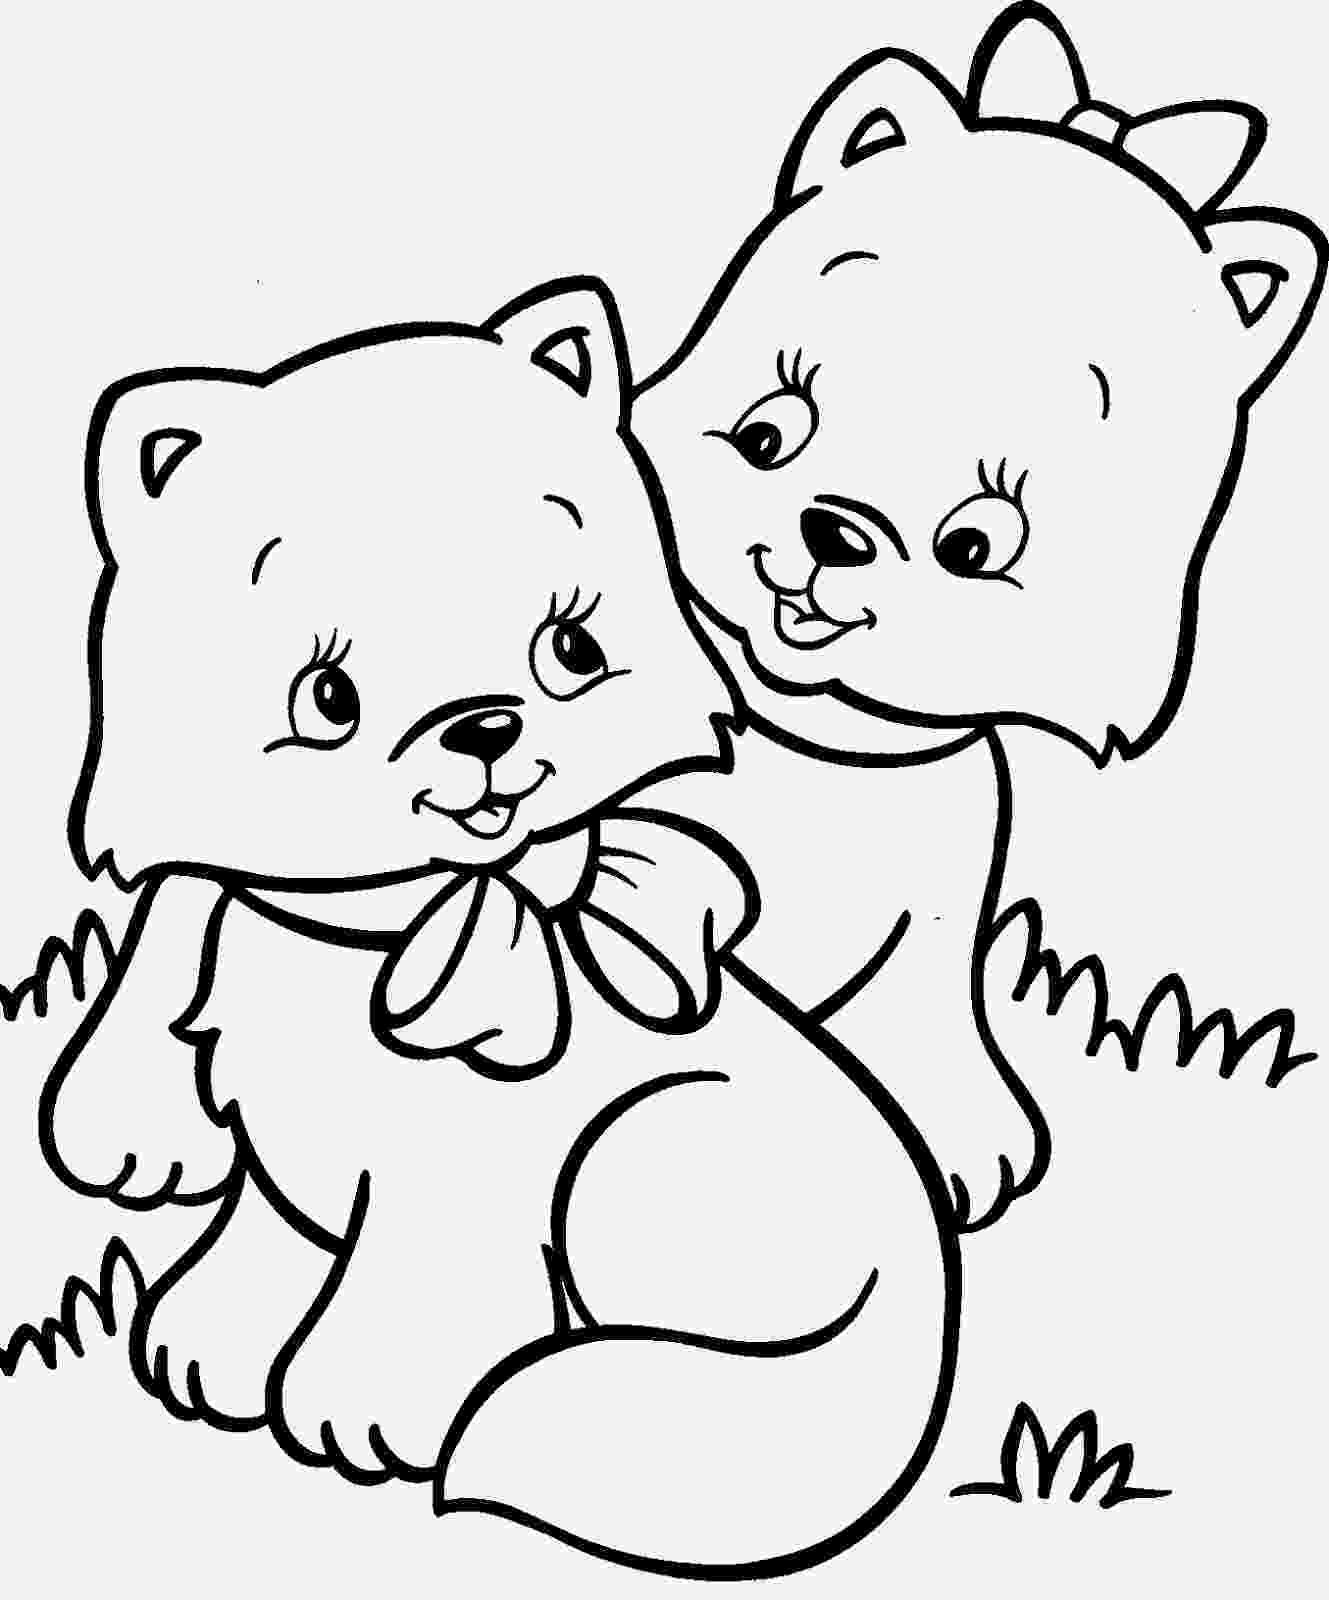 cute kitten colouring pages cute kitten coloring pages hellokidscom cute kitten colouring pages